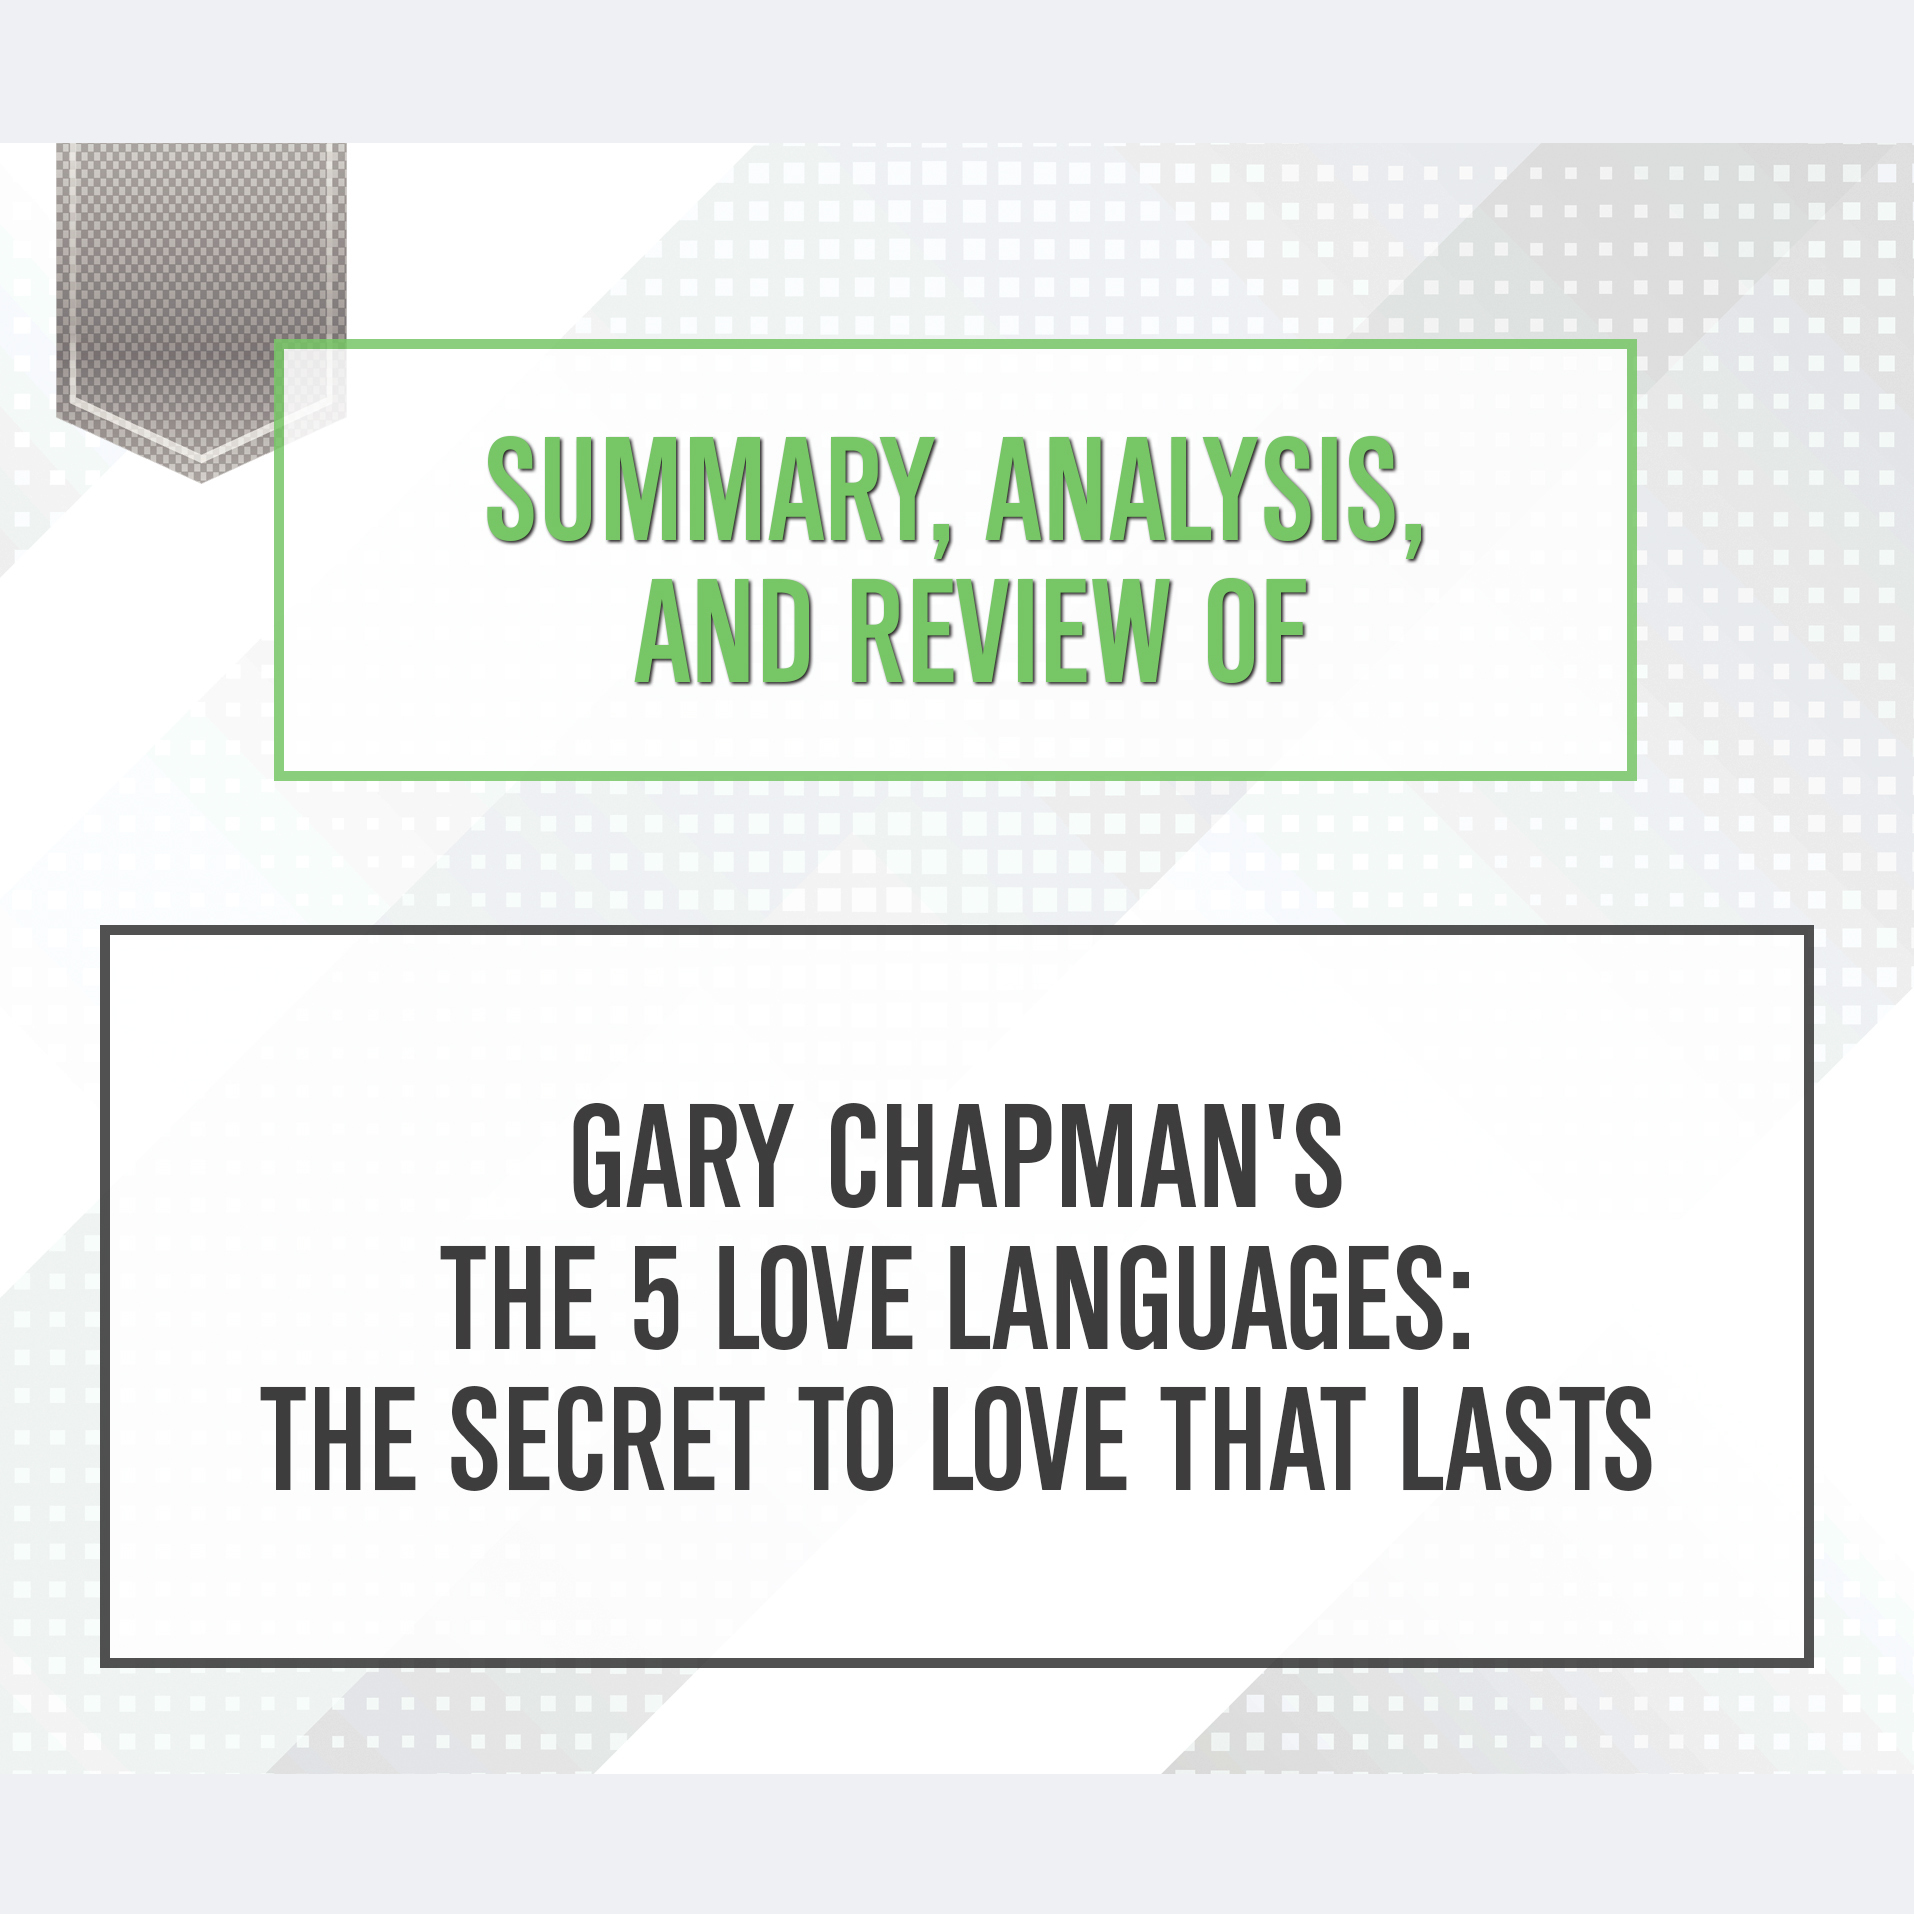 Summaryysis And Review Of Gary Chapman S The 5 Love